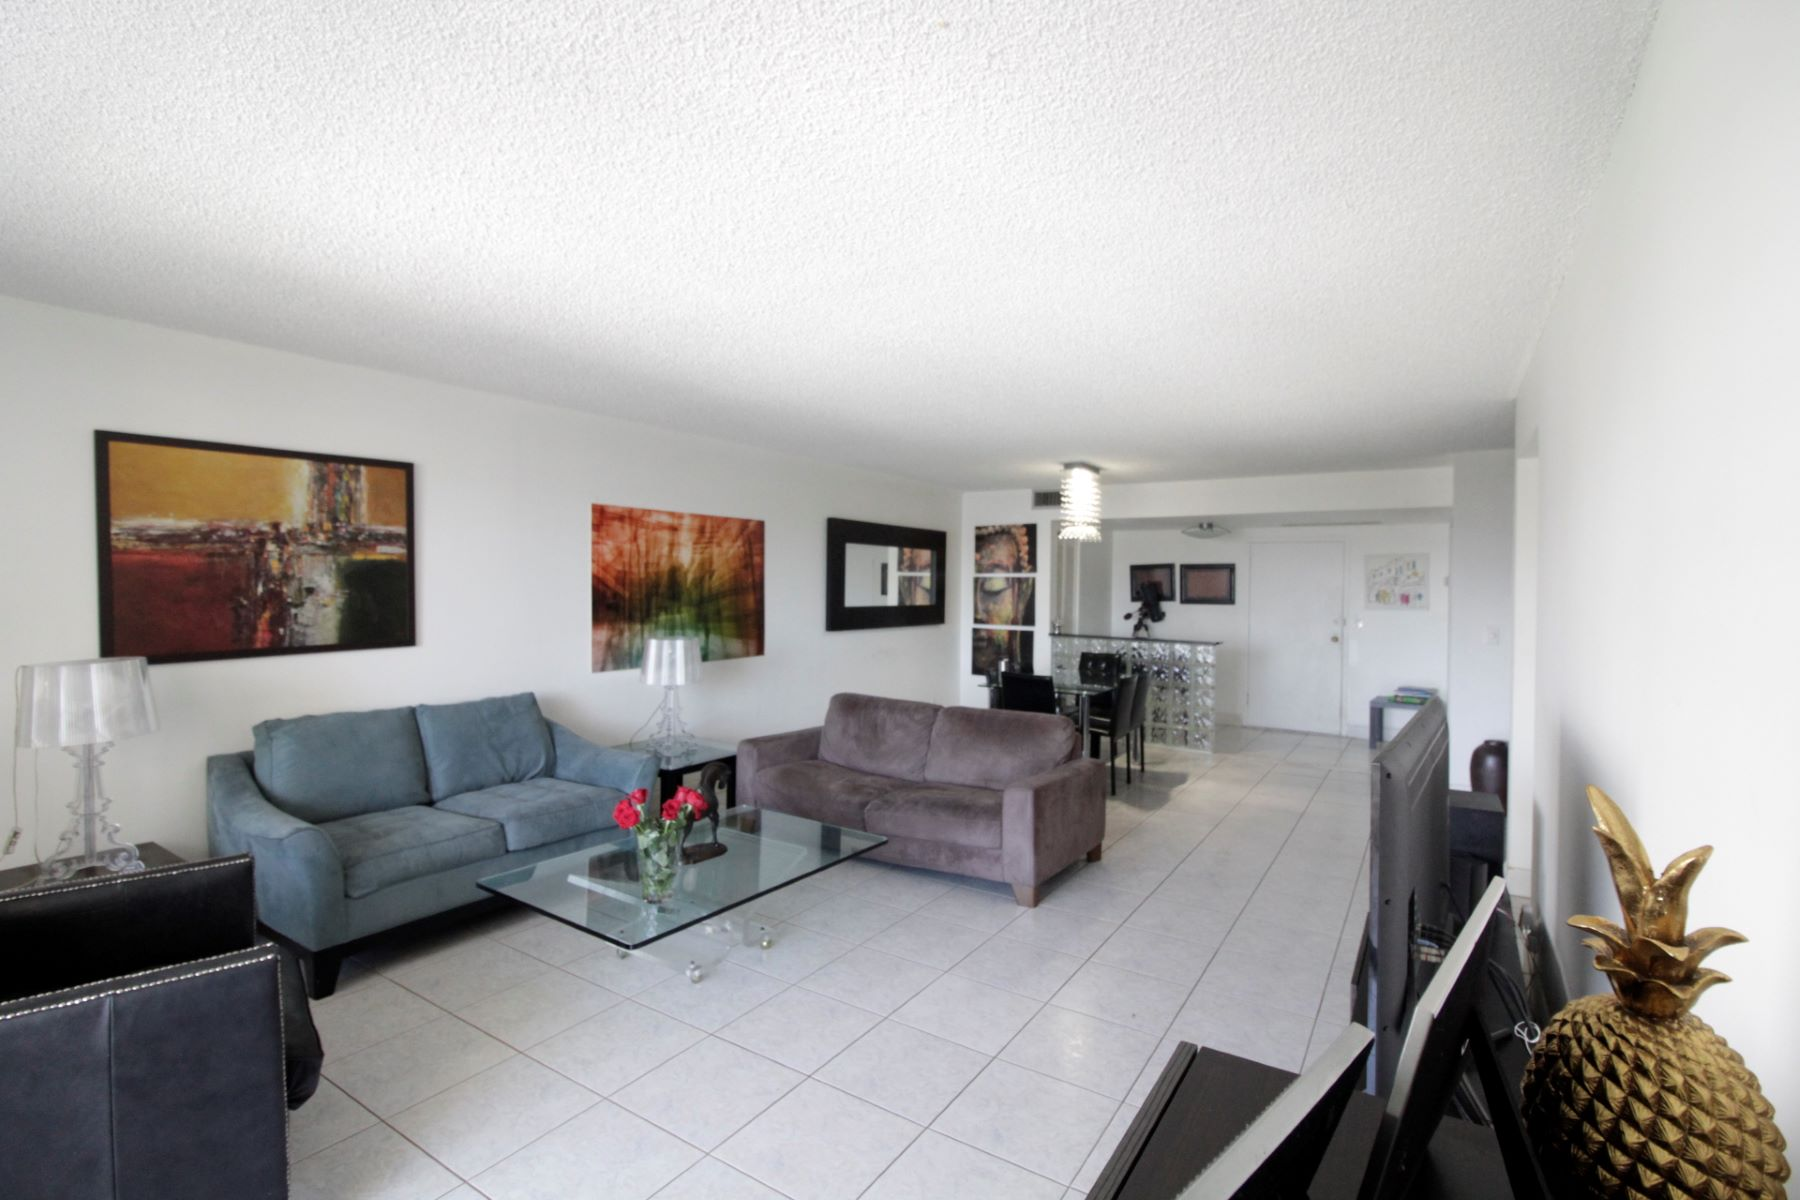 Condominiums for Sale at 2500 Parkview Dr 915, Hallandale, Florida 33009 United States